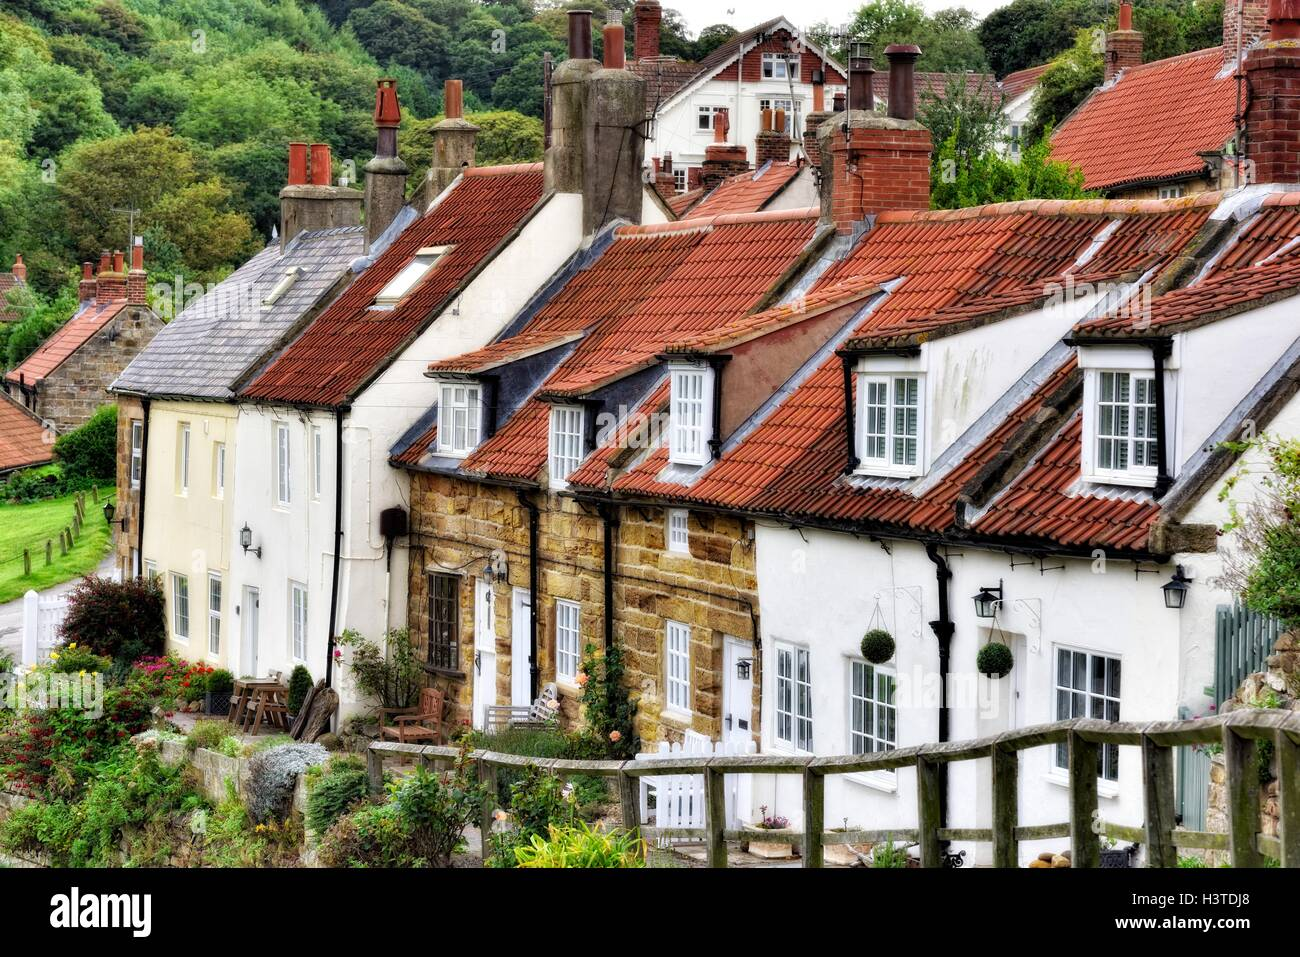 Super Holiday Cottages In Sandsend Whitby North Yorkshire England Home Interior And Landscaping Oversignezvosmurscom